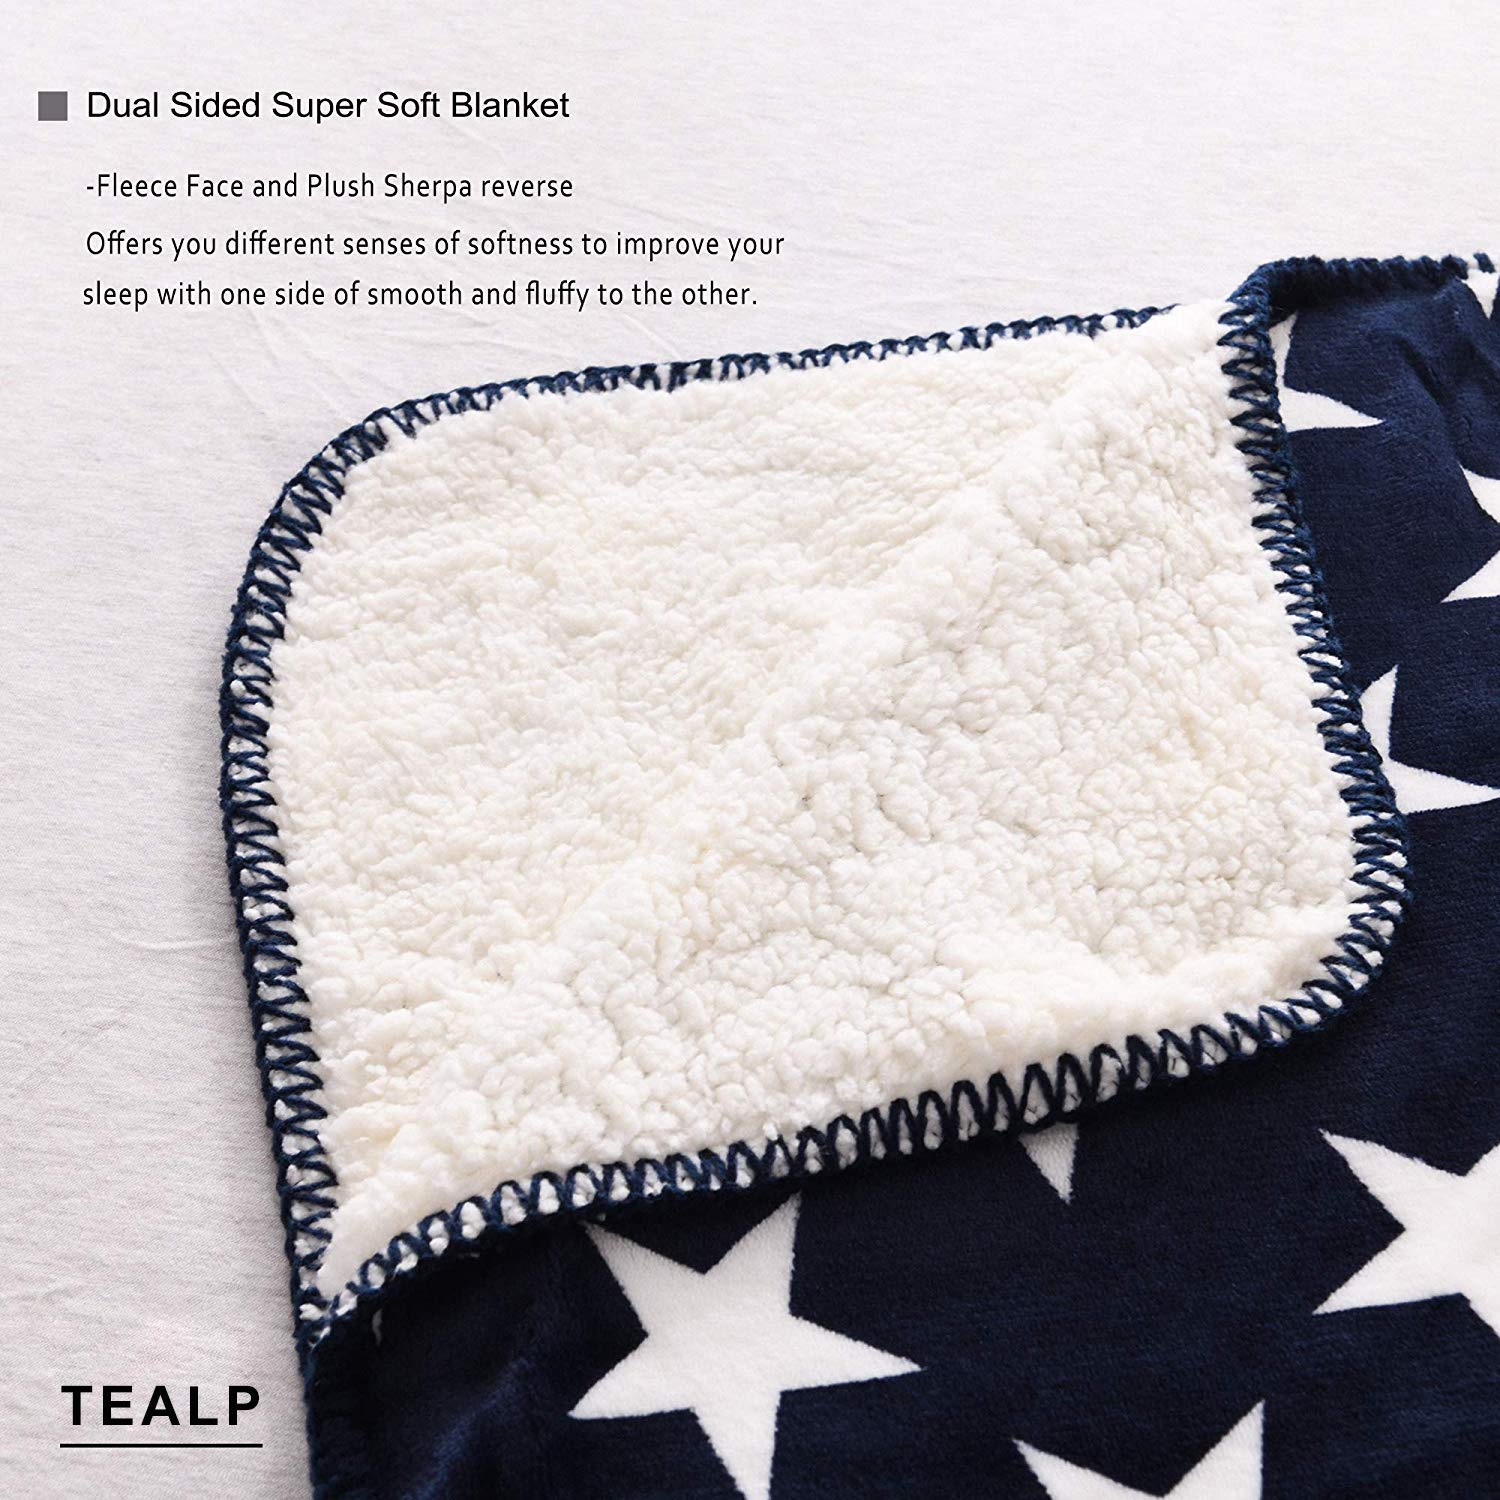 TEALP Sherpa Fleece Blanket Fluffy Soft Blanket British Flag Throw Blanket Travel Camping Blanket fit Couch Sofa Bed 51x 59 inch